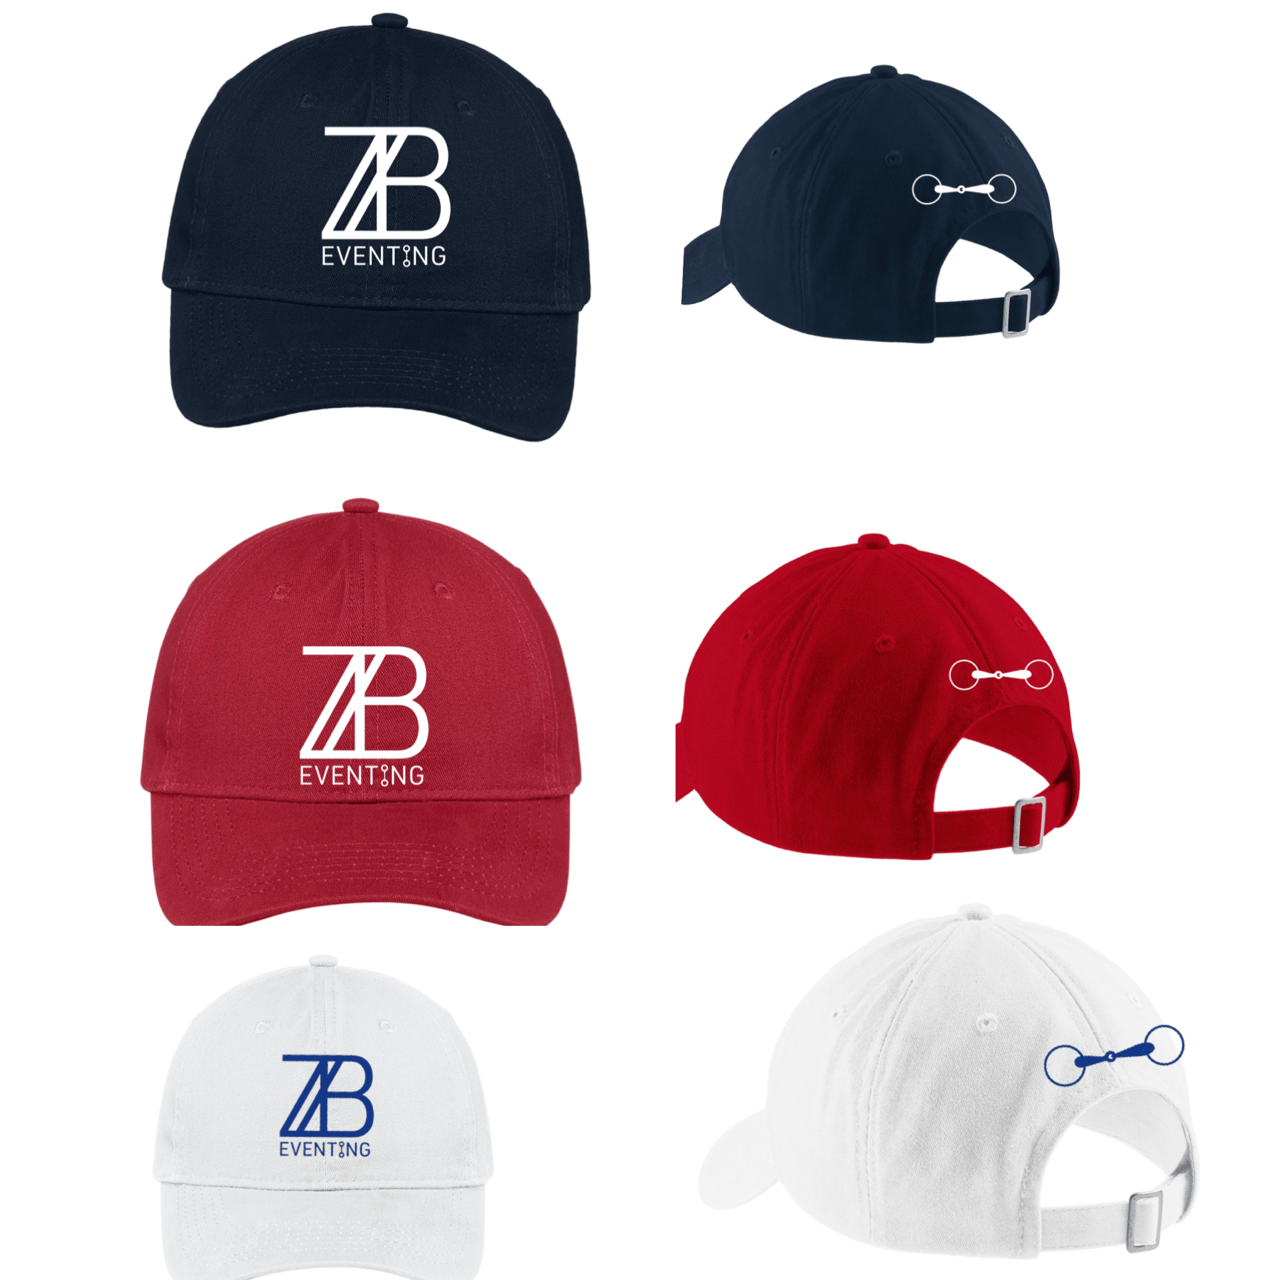 Equestrian Team Apparel Custom Team Hats ZB Eventing Hats equestrian team apparel online tack store mobile tack store custom farm apparel custom show stable clothing equestrian lifestyle horse show clothing riding clothes horses equestrian tack store